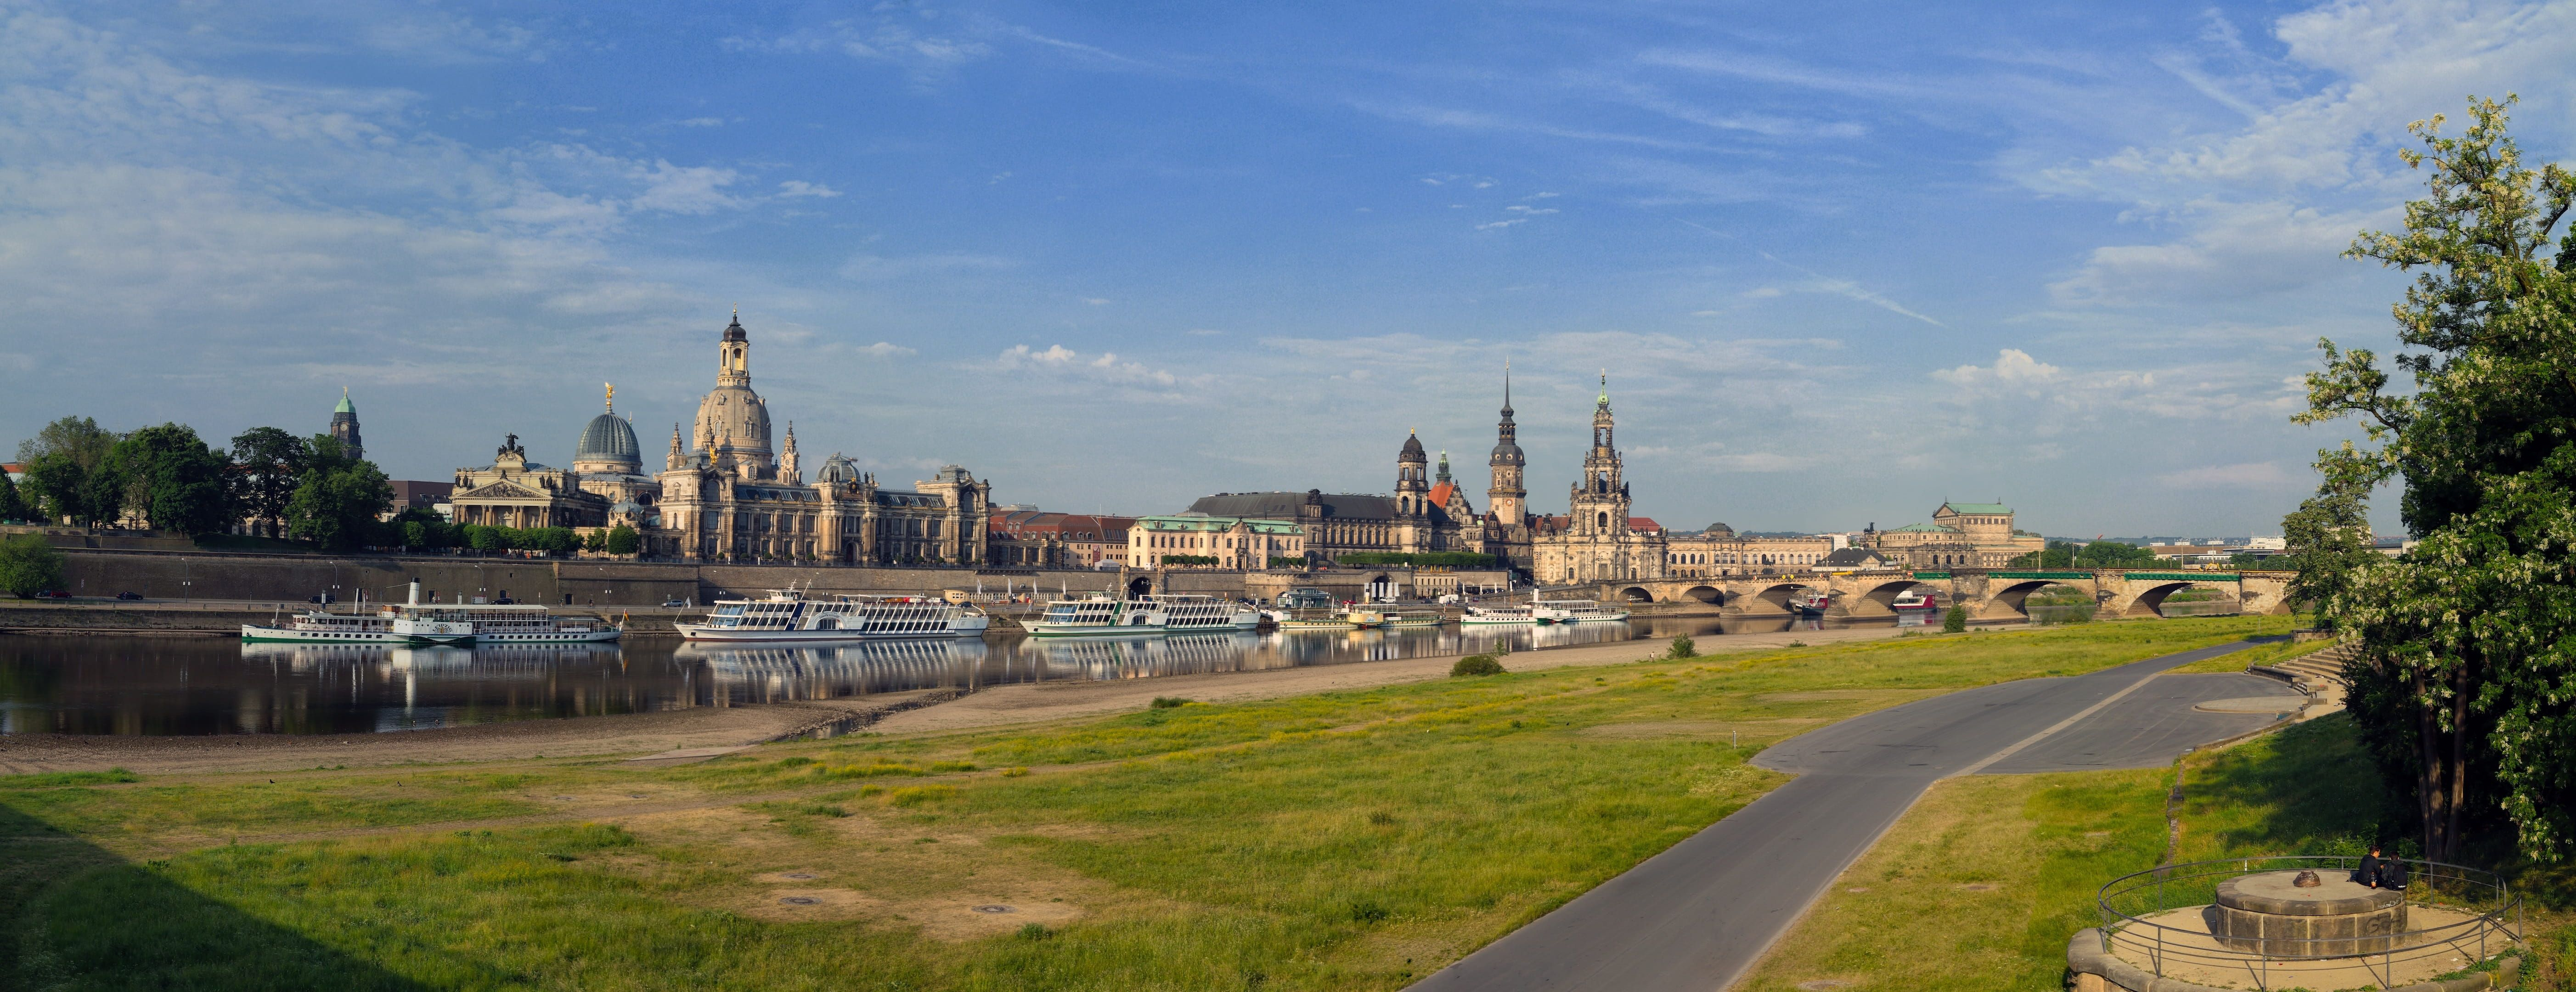 Boats On Body Of Water During Daytime Dresden Elbe Panorama Saxony River Steamer Elbpanorama Old Town Architecture Ship King Ri Panorama Daytime Water